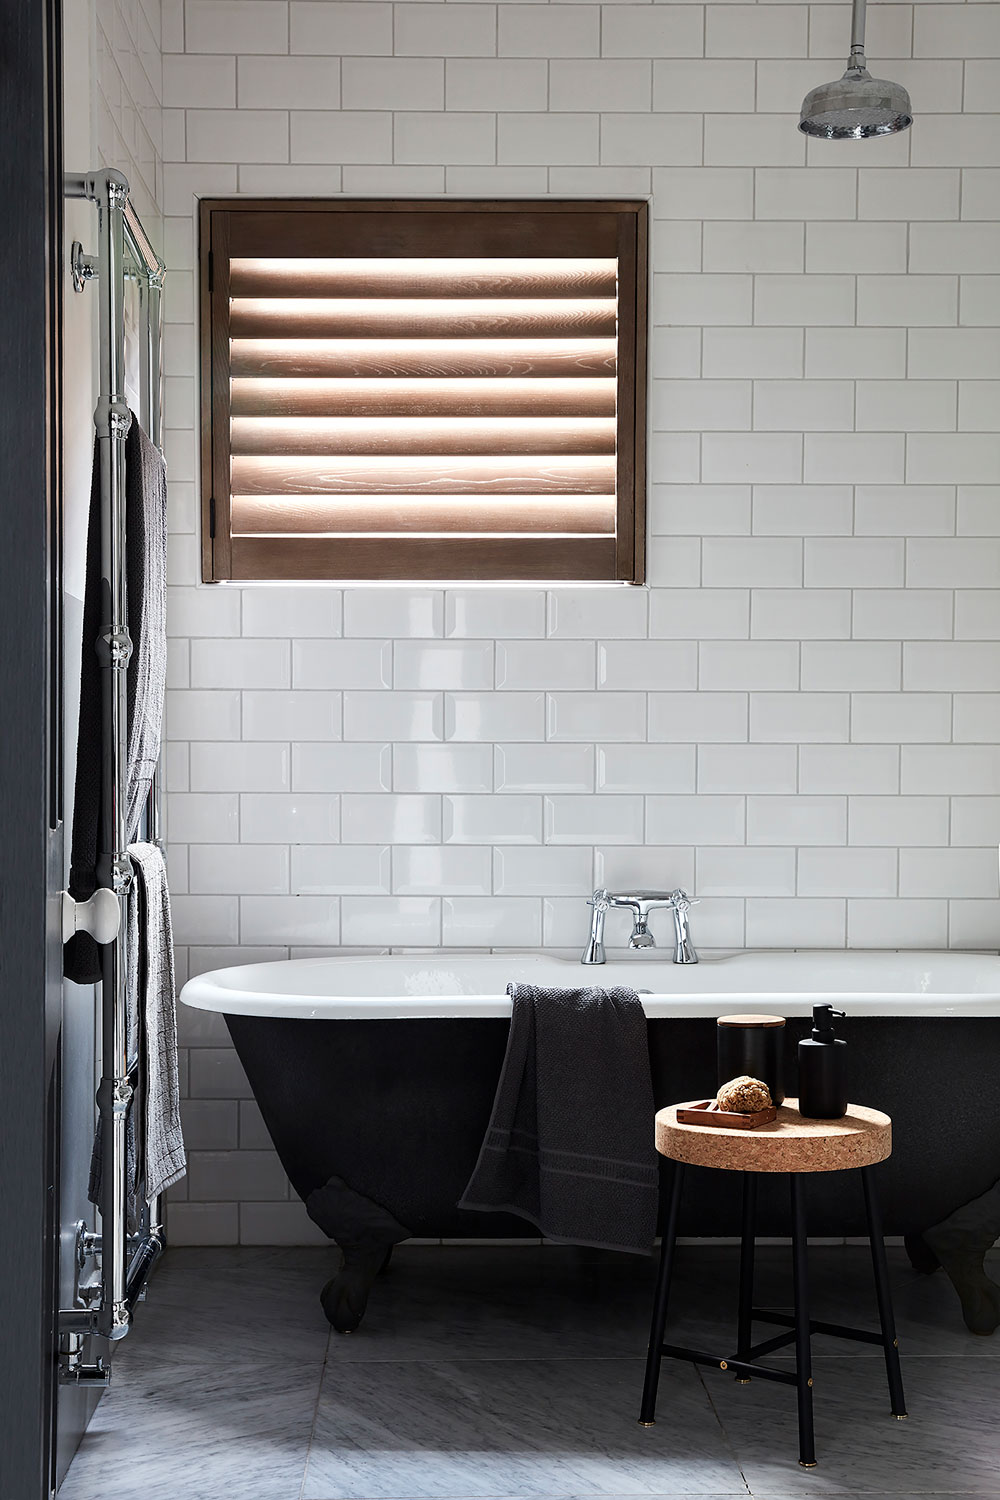 Wooden shutters in the bathroom